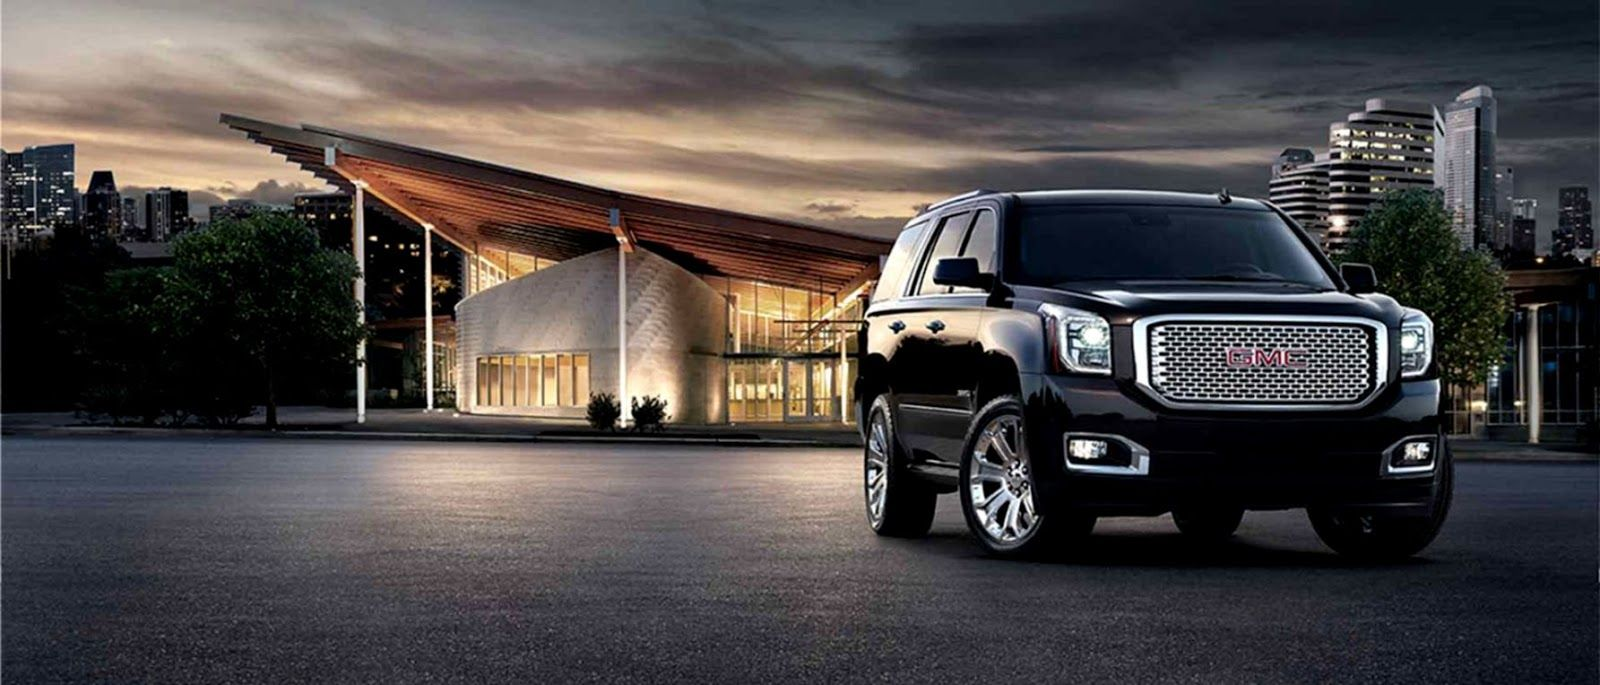 Gmc Wallpapers Top Free Gmc Backgrounds Wallpaperaccess